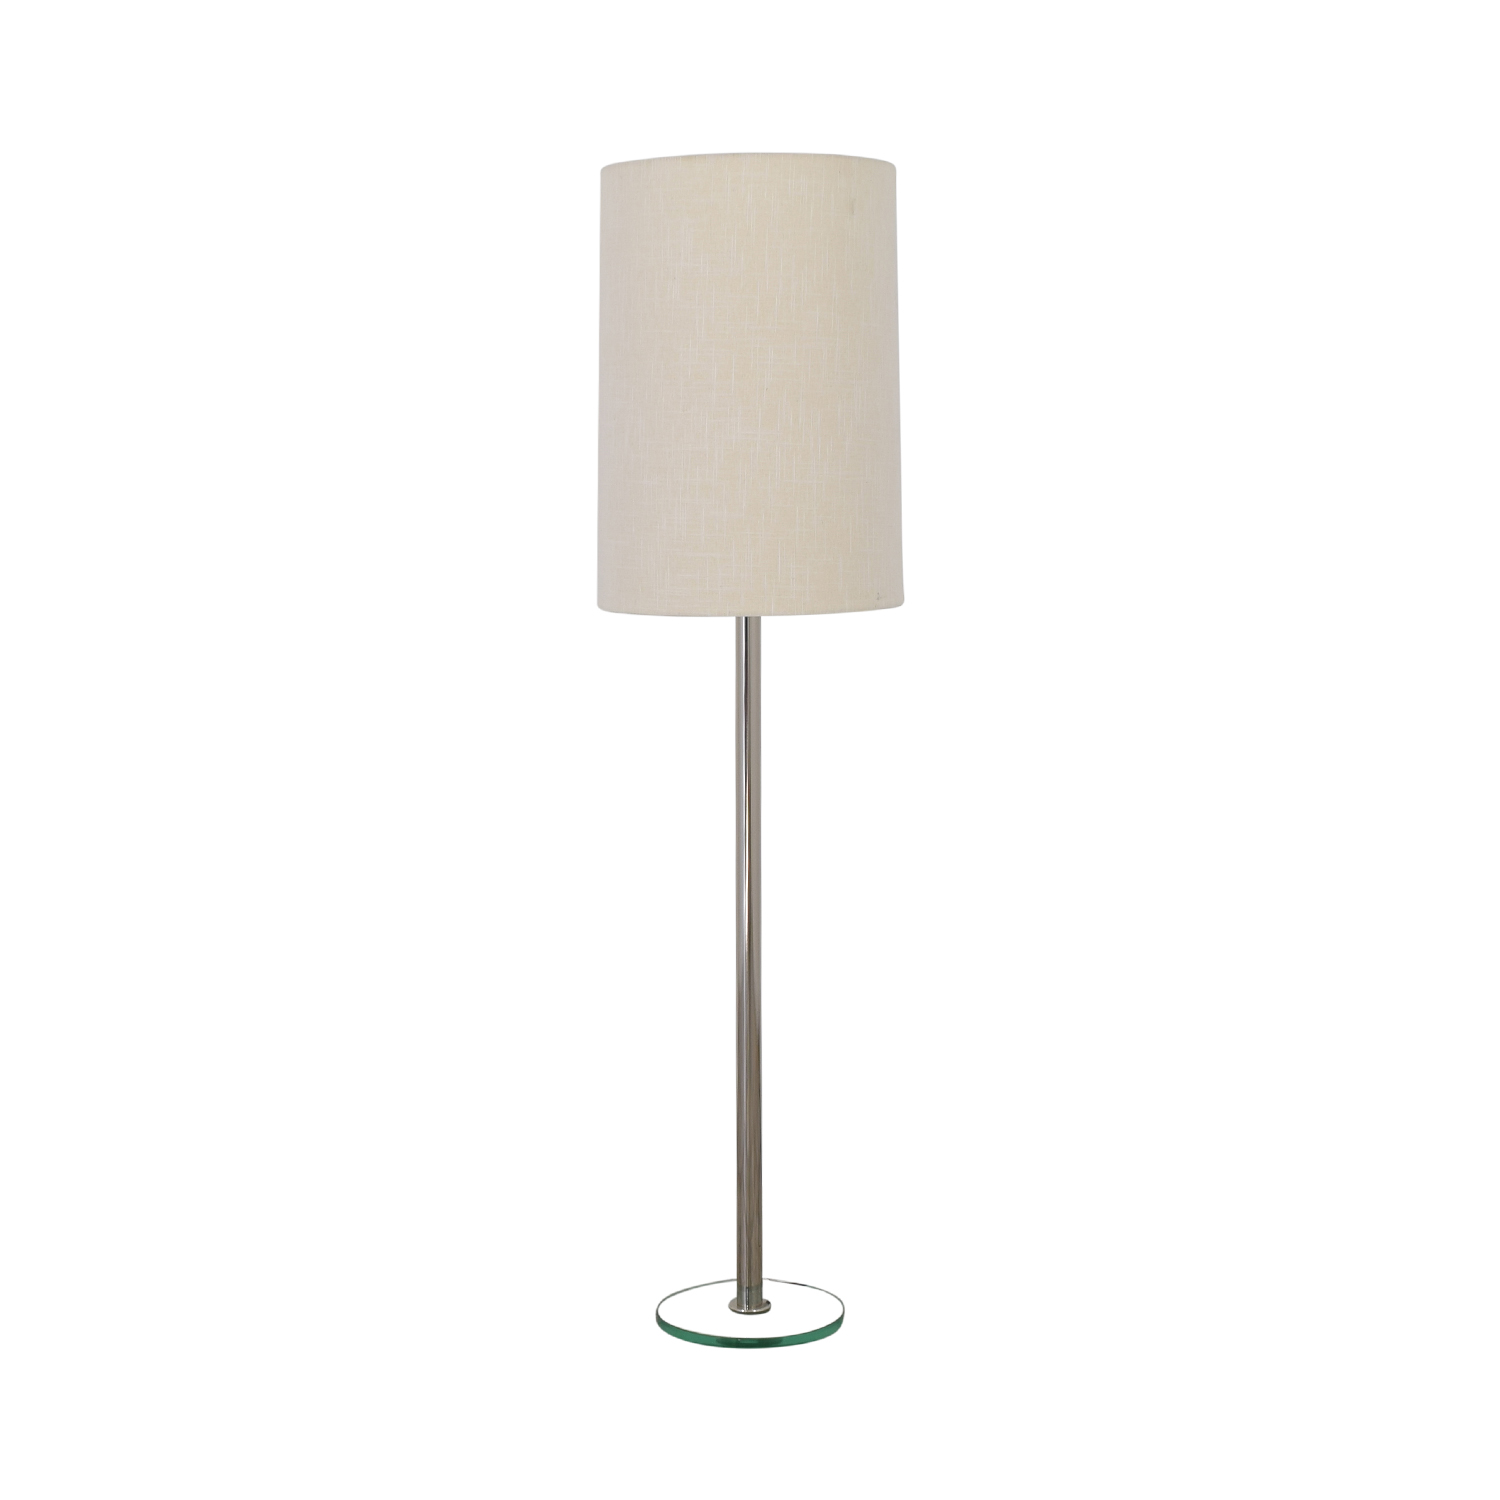 Crate & Barrel Claire Floor Lamp Crate & Barrel